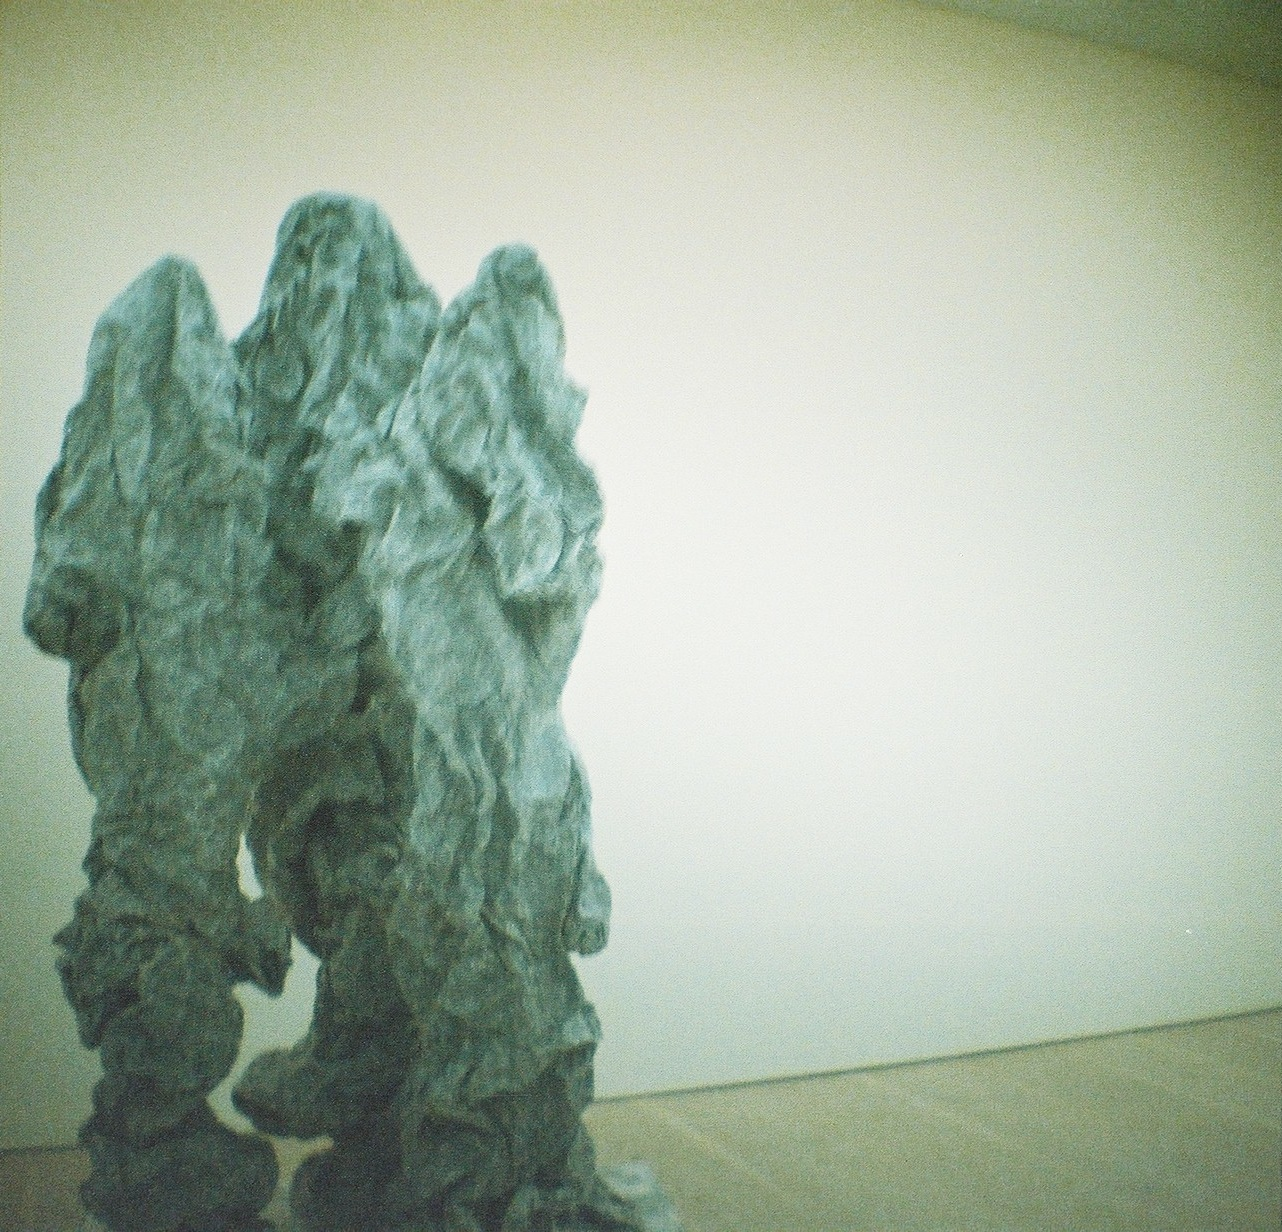 A sculpture which looks like a lump of crumpled paper shaped into three distinct figures like people wearing crumpled sheets.